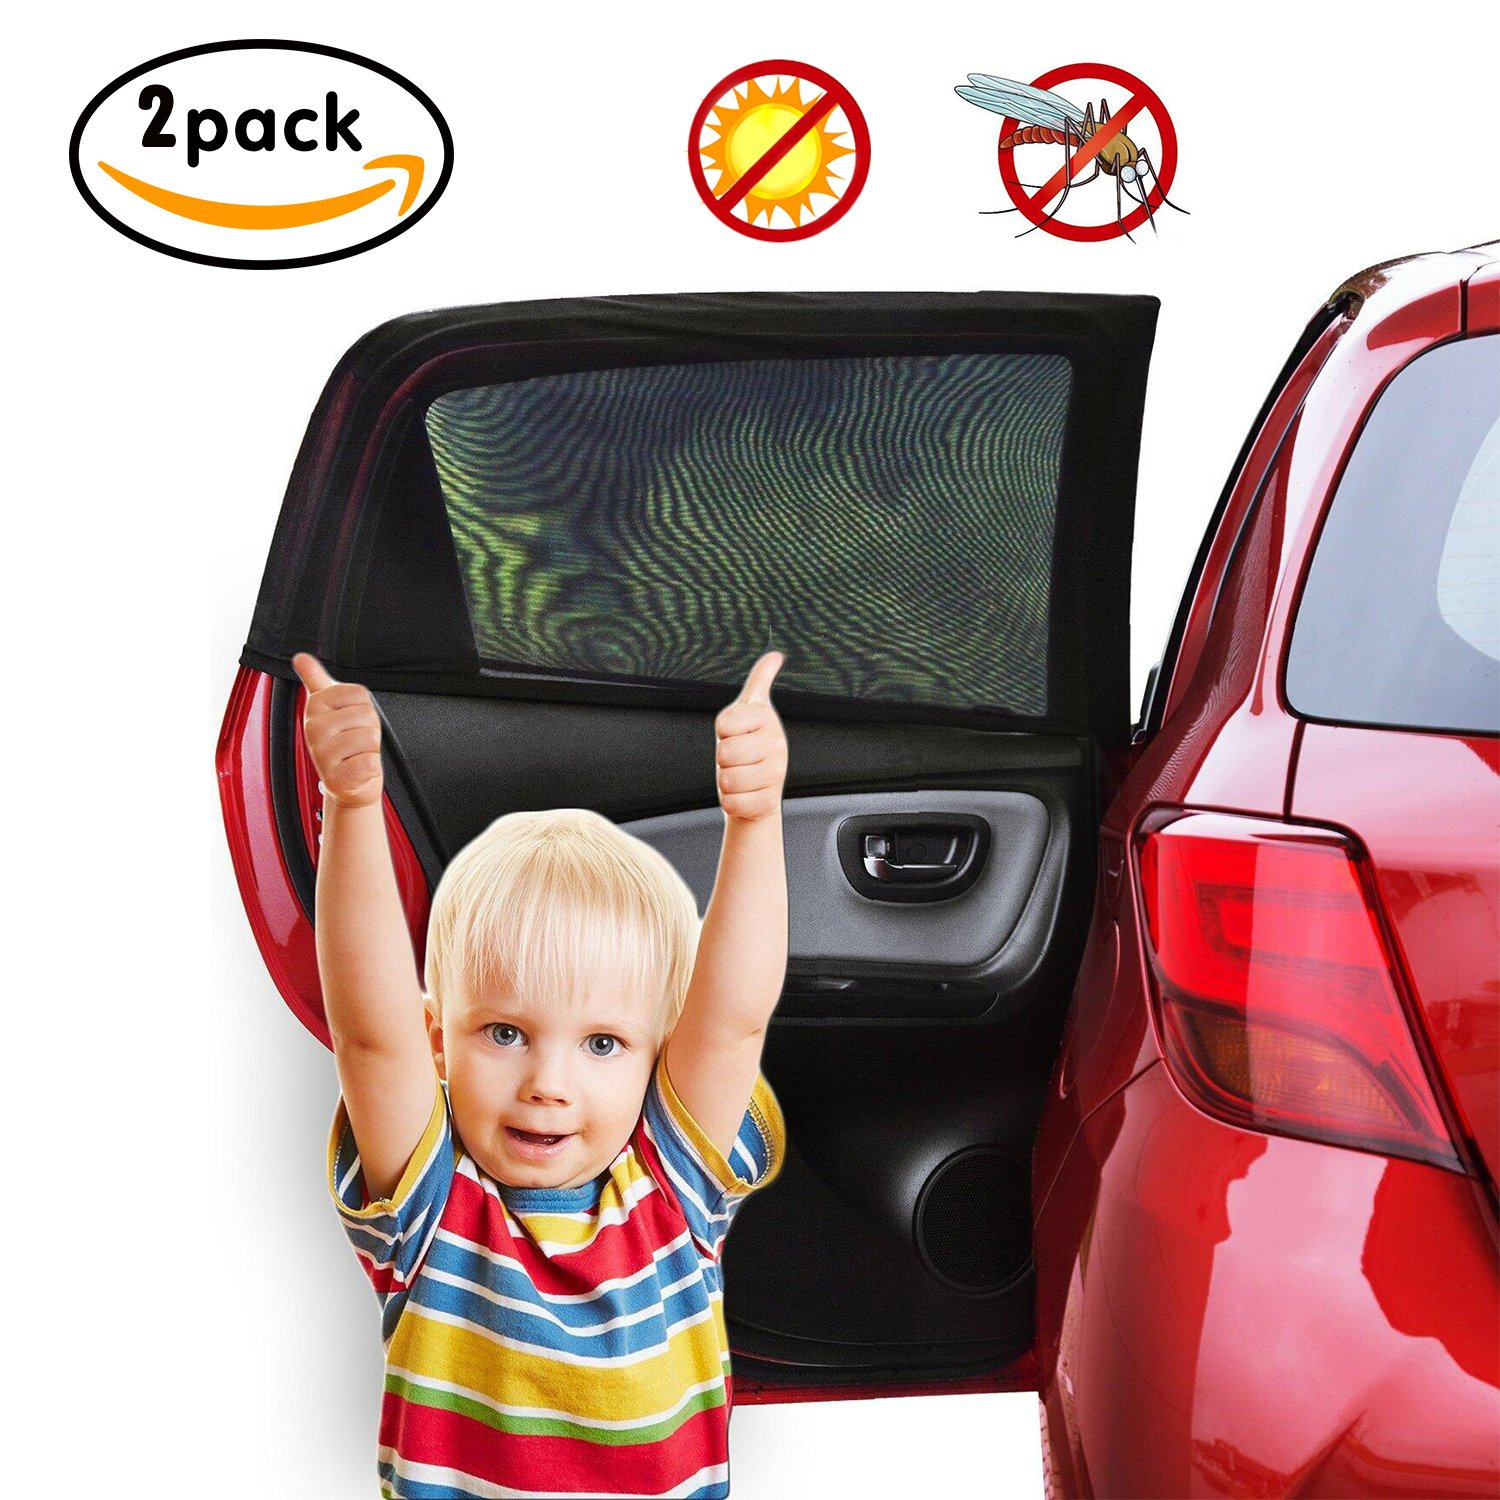 Car Sun Shades (2 Pack), Tinabless Universal Car Window Shade with UV Protection | Protects Your Baby, Pets and Older Kids from The Sun, Fits All (99%) Cars! Most SUVs!